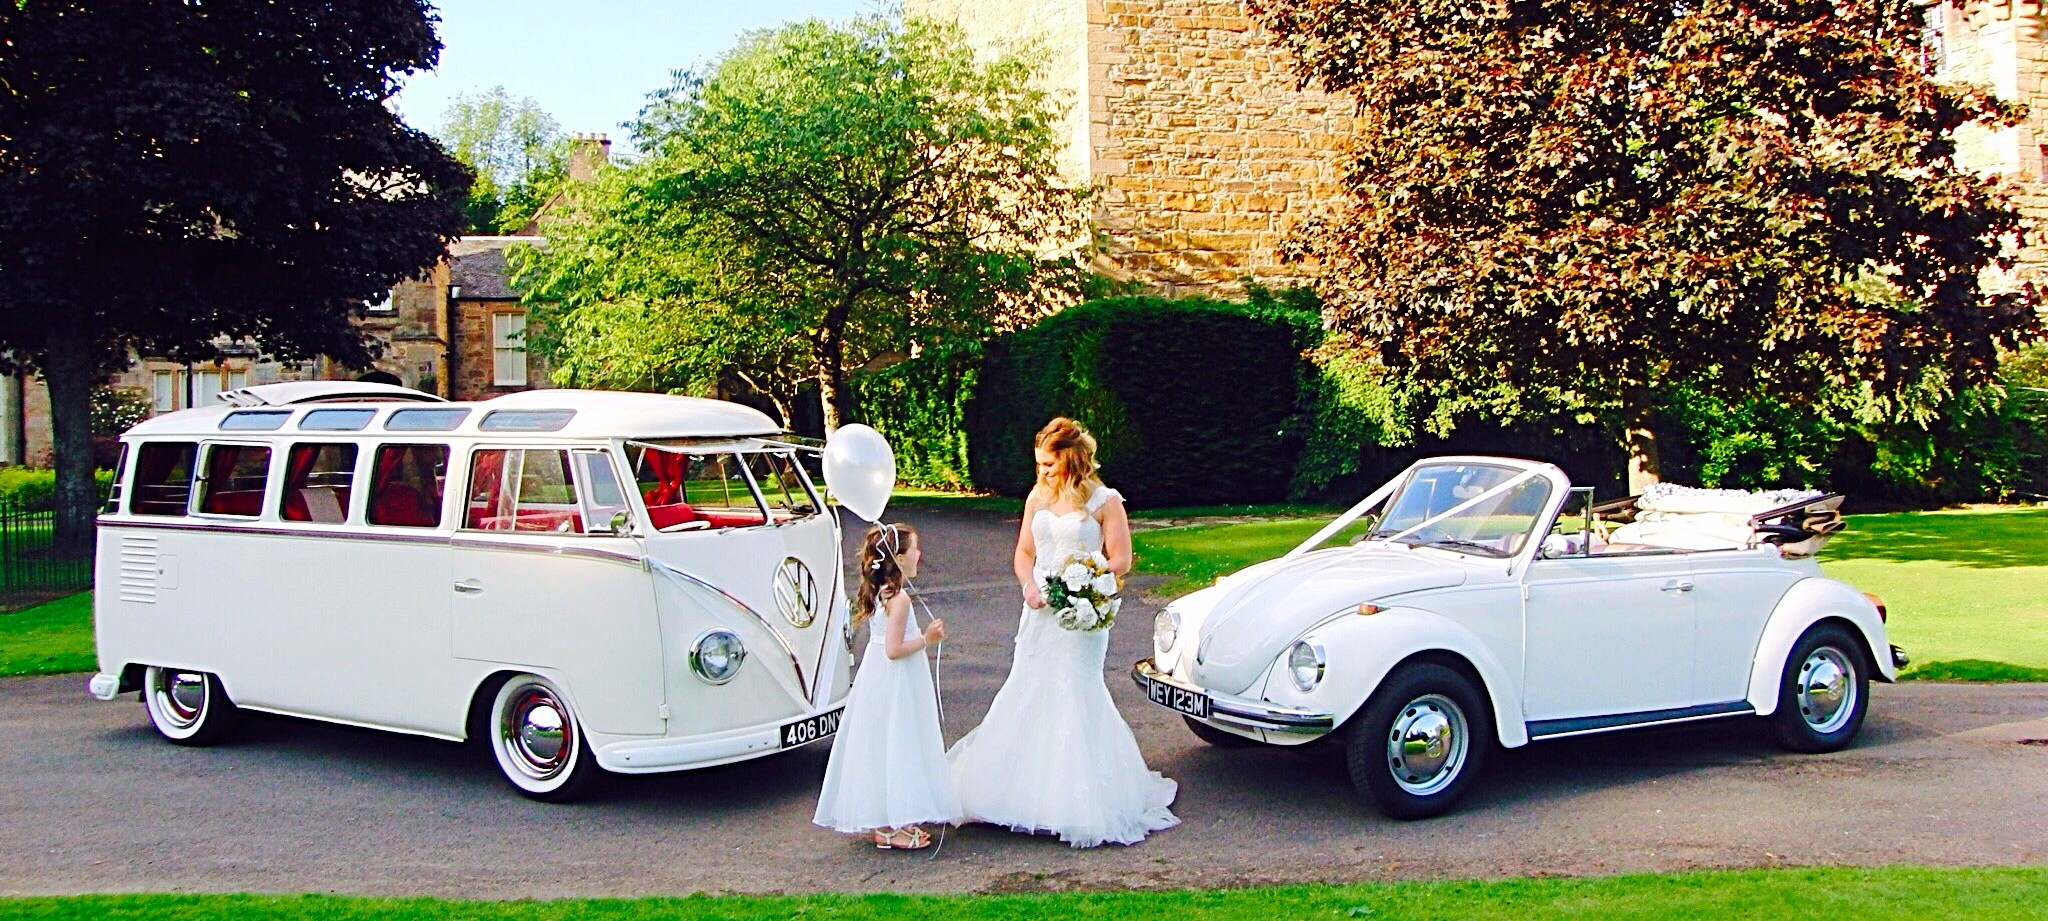 Home Ayrshire Vw Camper Wedding Hire